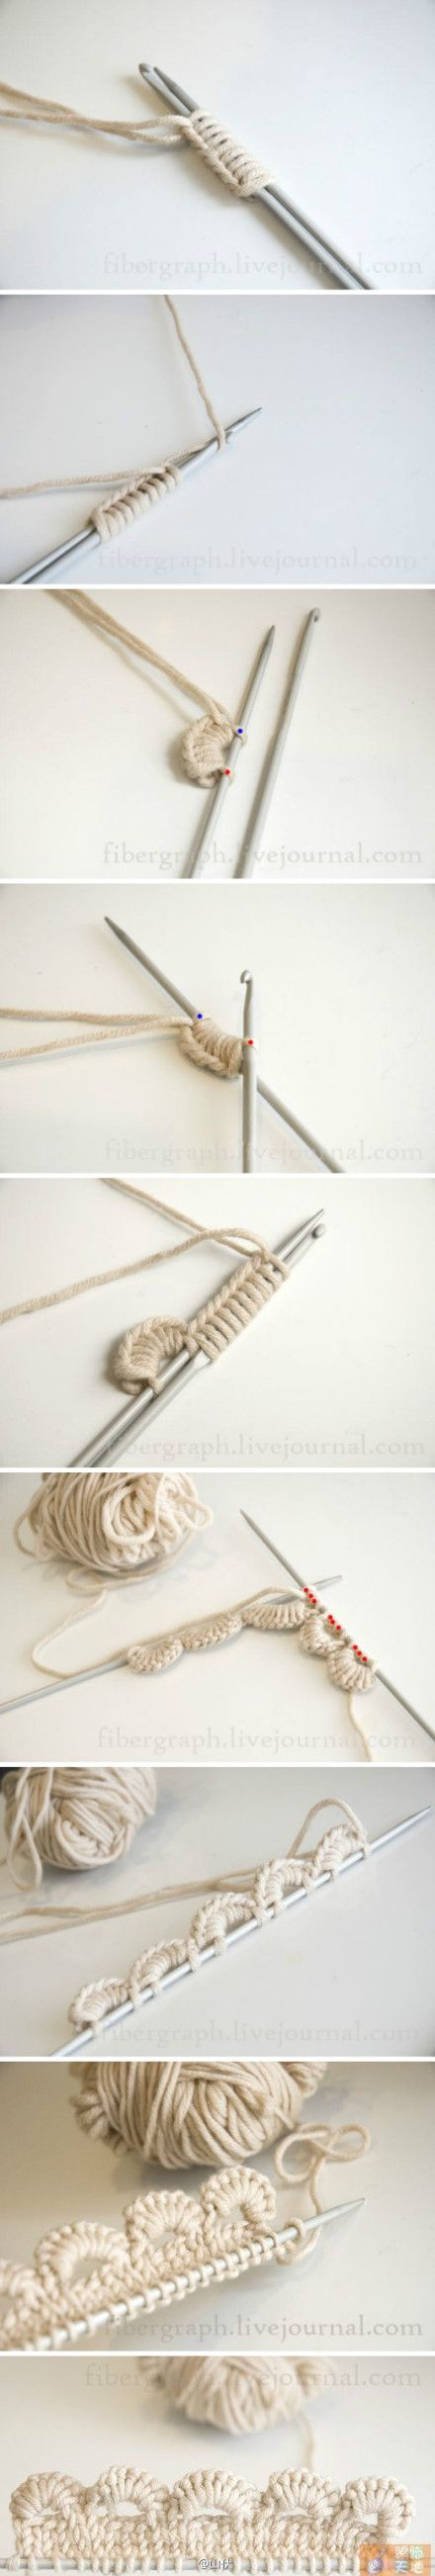 "#Knitting_Tutorial + #Crochet_Tutorial = ""Such an interesting way to get a crocheted scallop edge onto a knitting project. I can see a summer top made in organic cotton yarn using this technique!"" comment via #KnittingGuru"